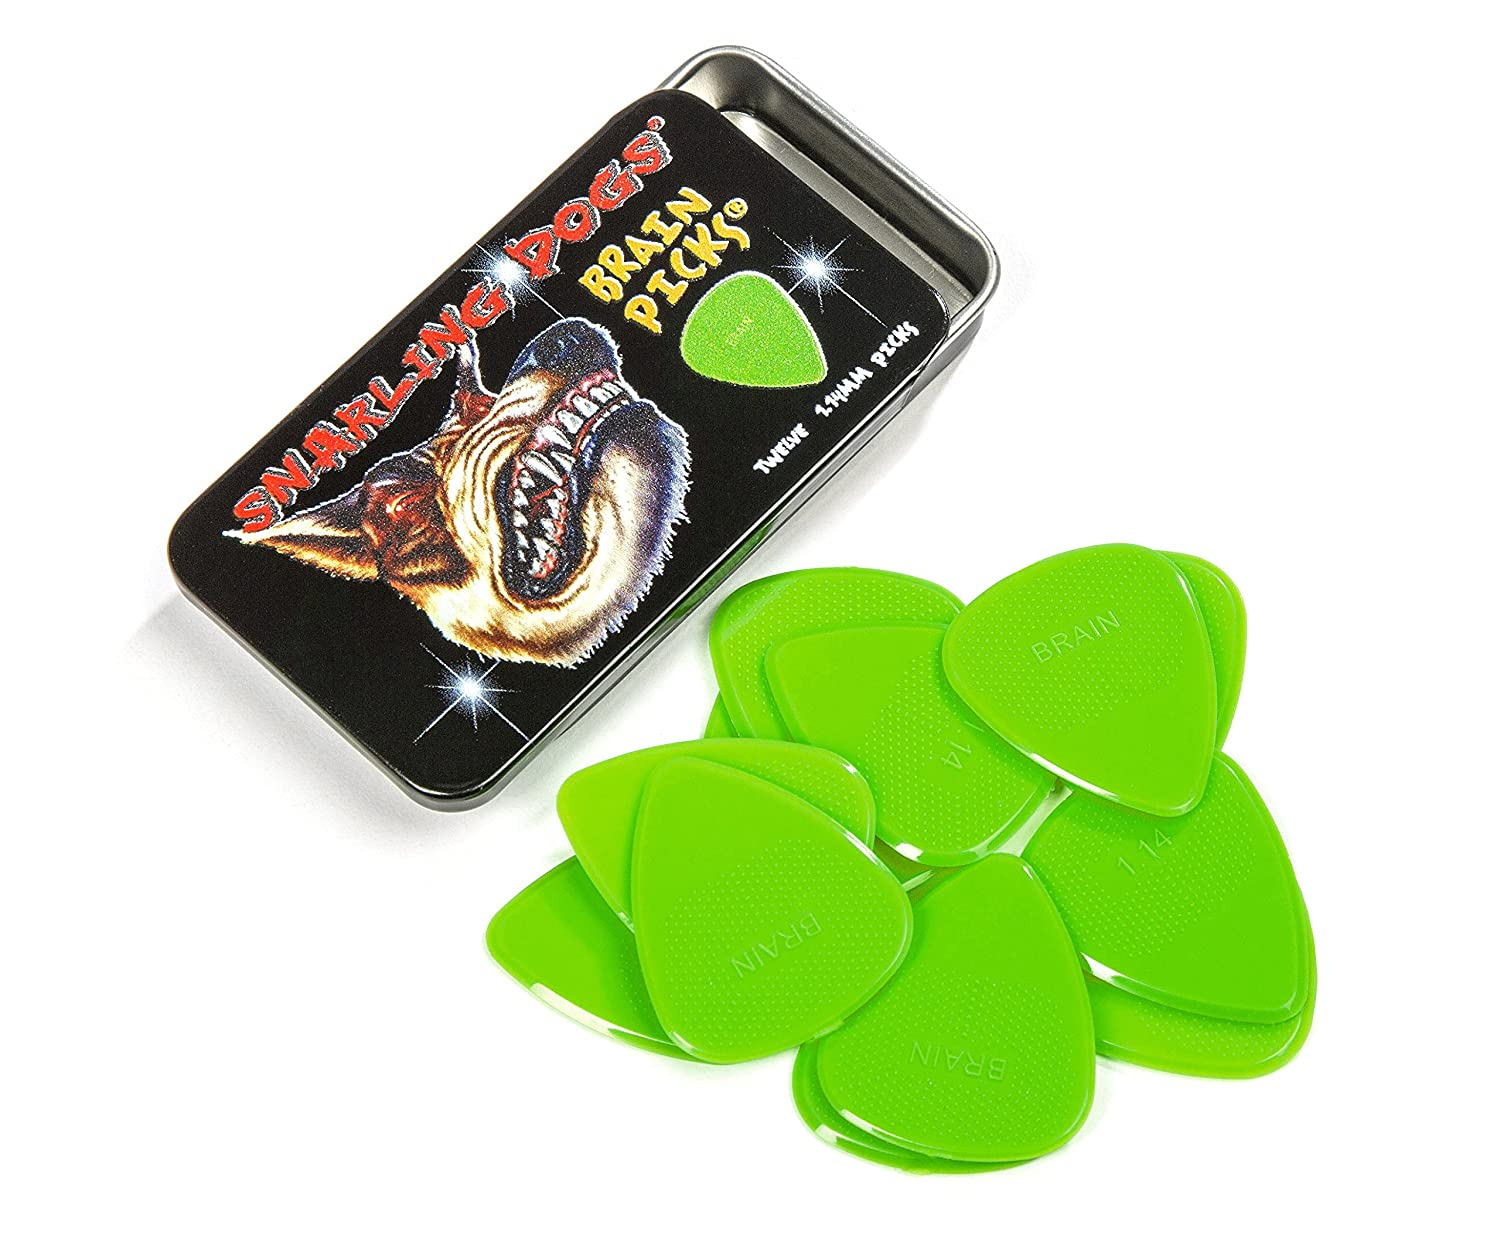 Snarling Dogs Brain Guitar Picks Green .53 mm 12 picks with Tin Box